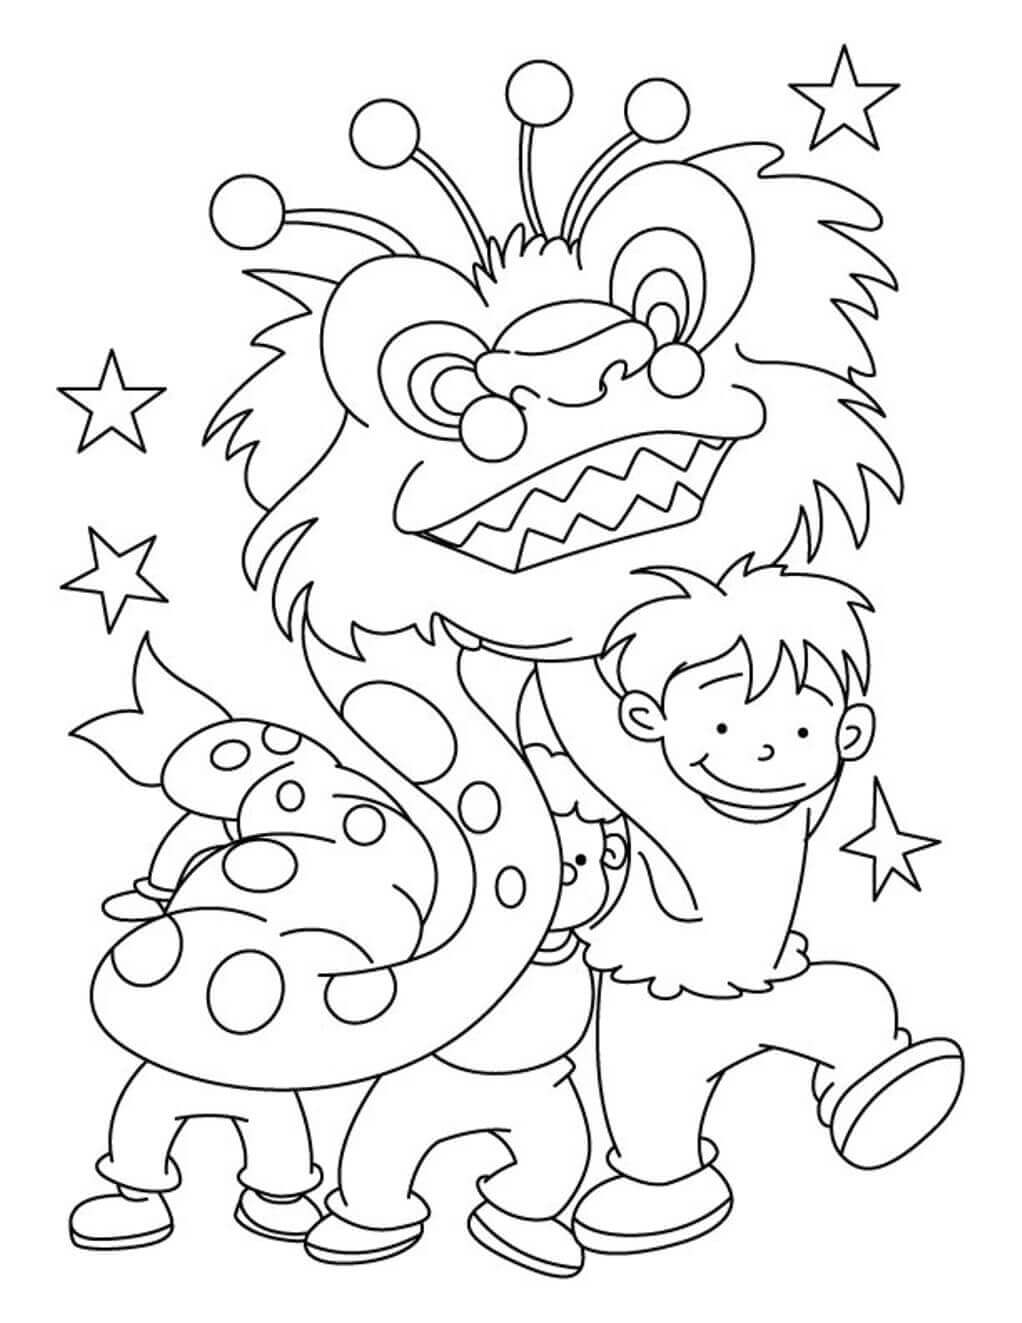 New Year In China 2018 Coloring Pages